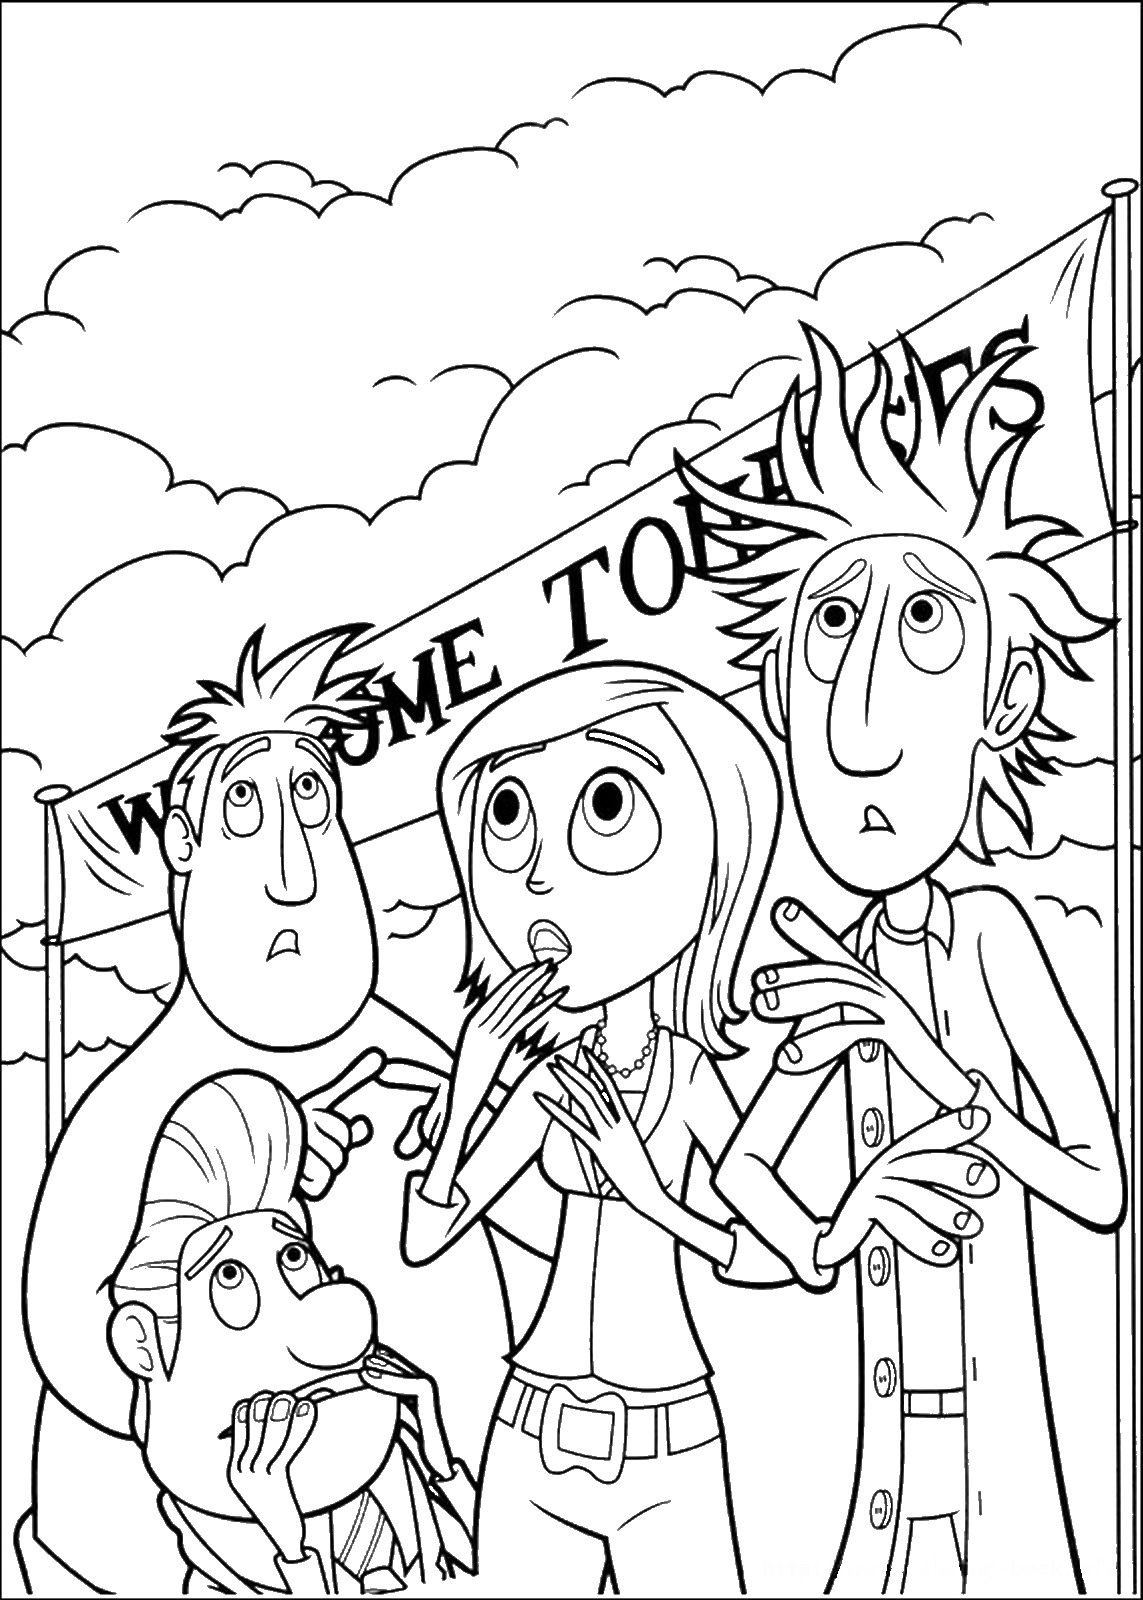 cloudy with a chance of meatballs 2 coloring pages cloudy with a chance of meatballs coloring pages 2 coloring chance cloudy a of pages meatballs with